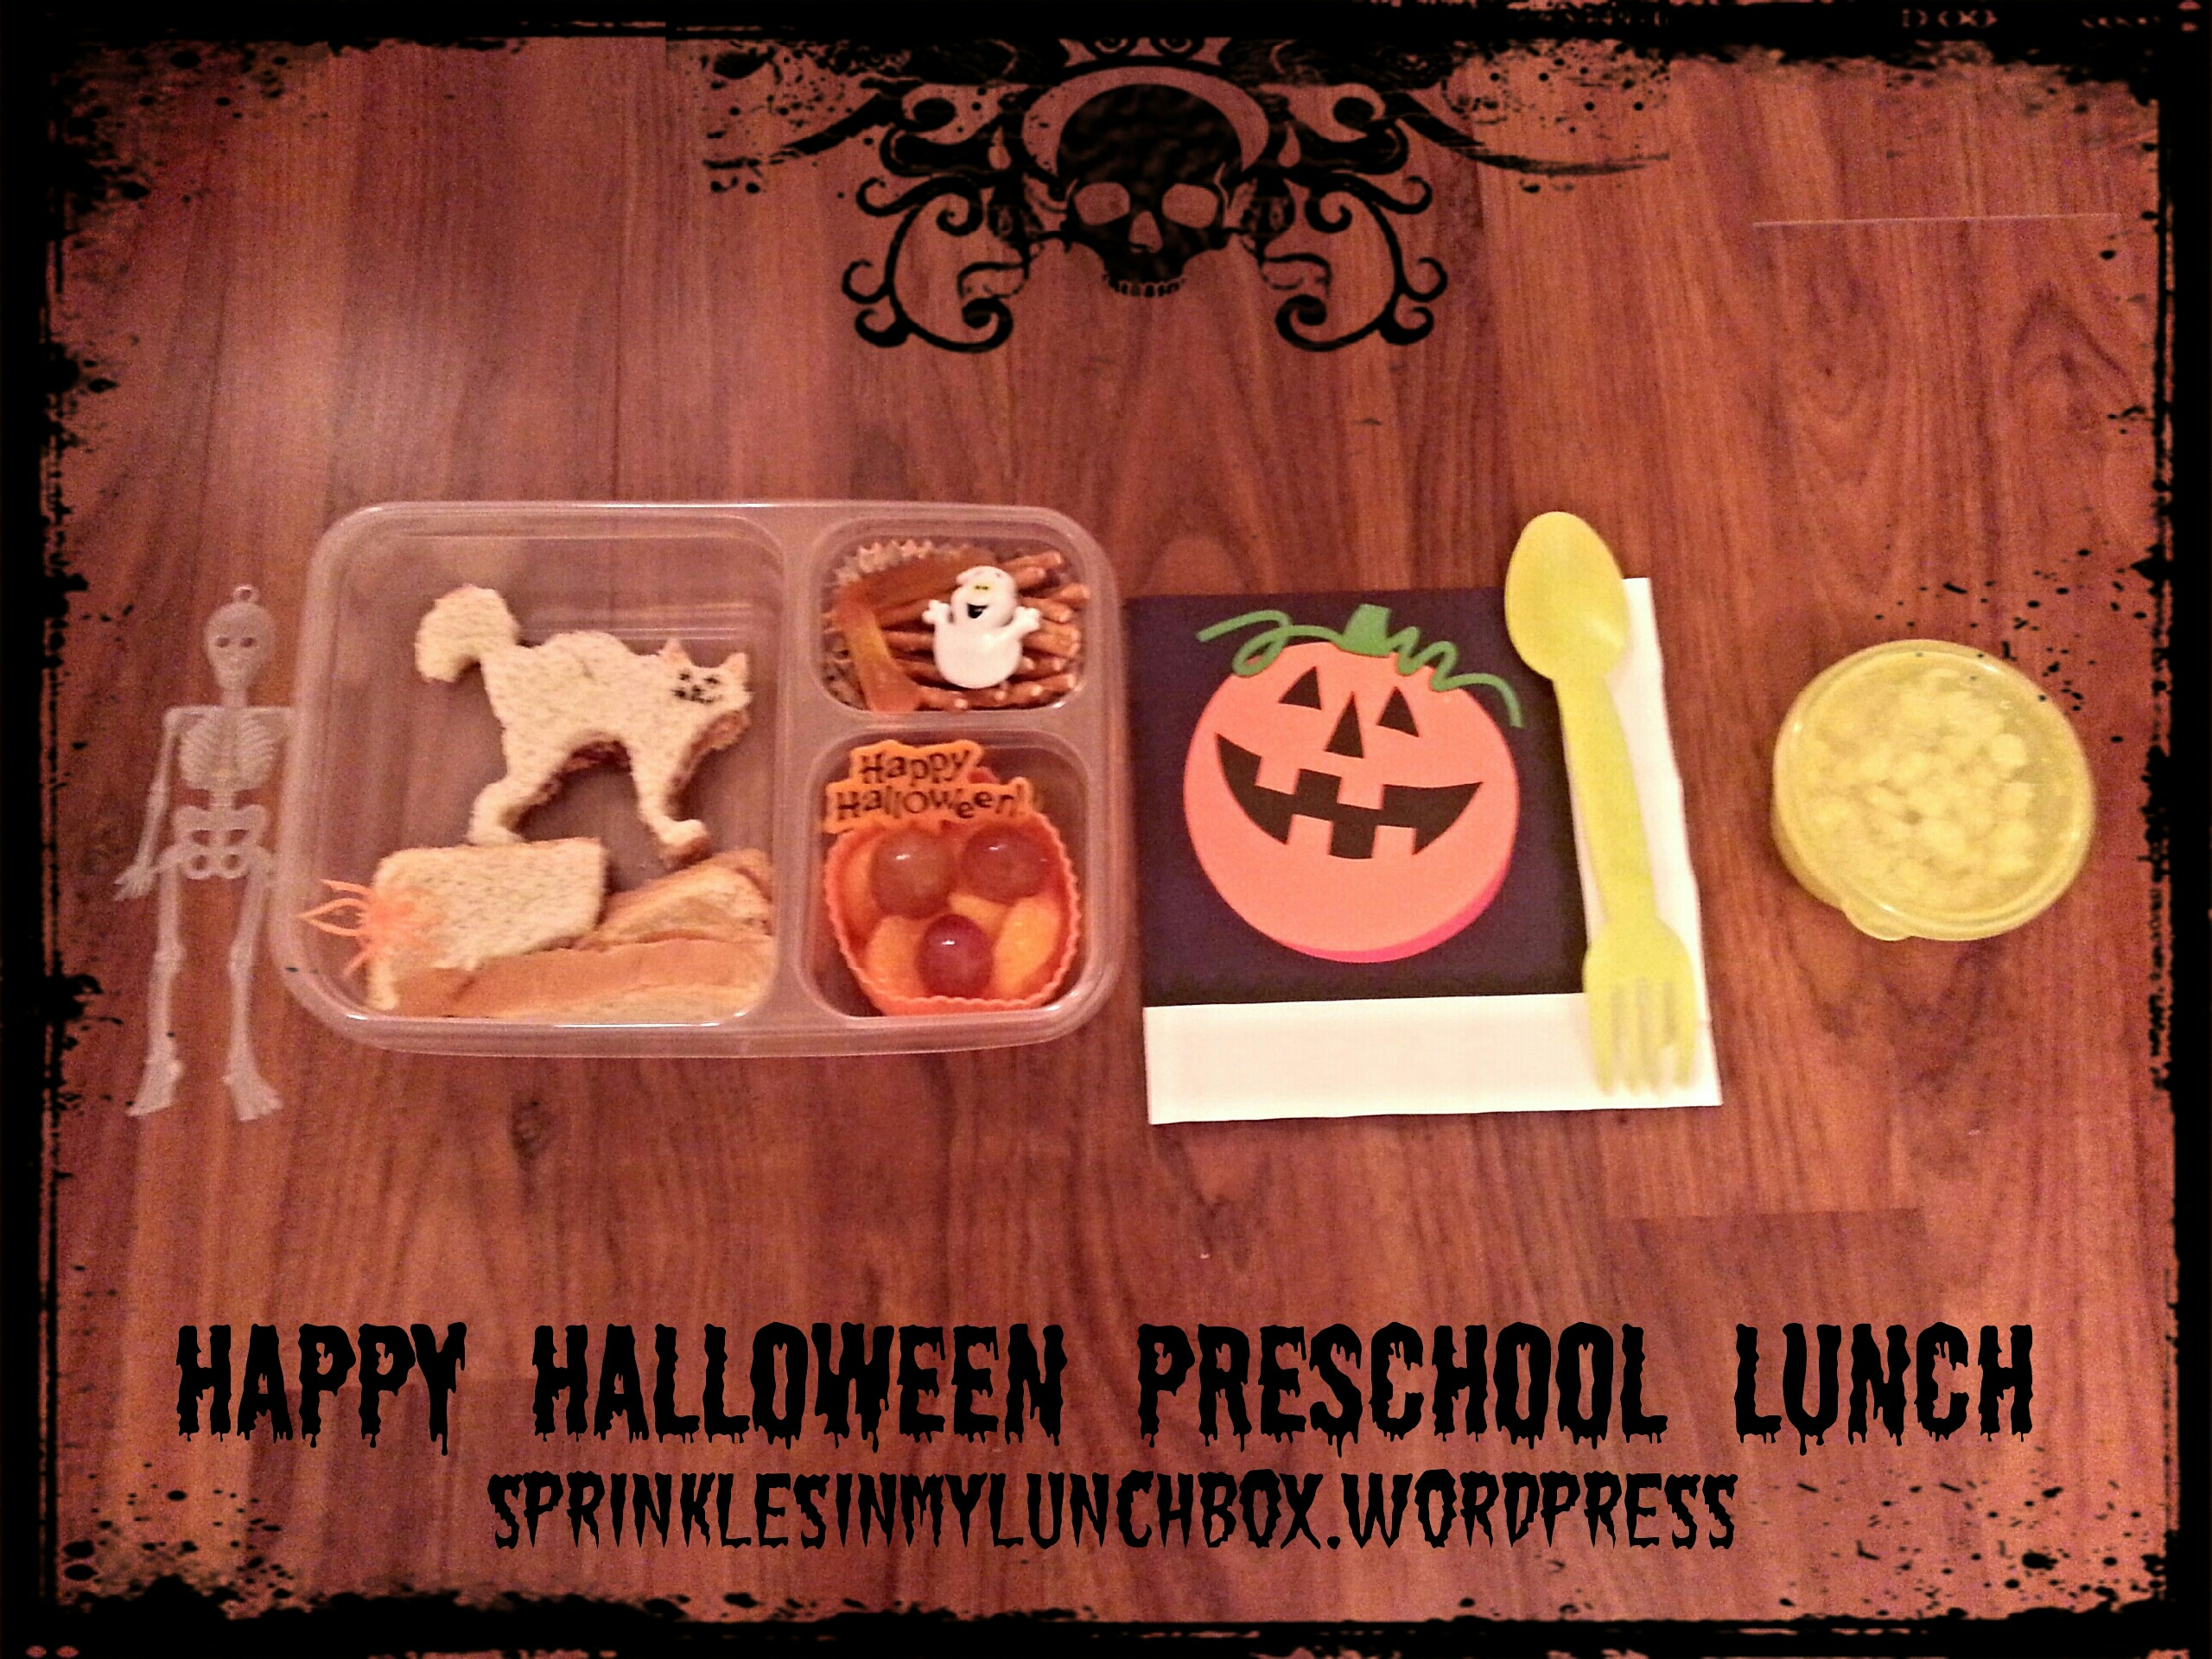 HappyHalloweenLunch